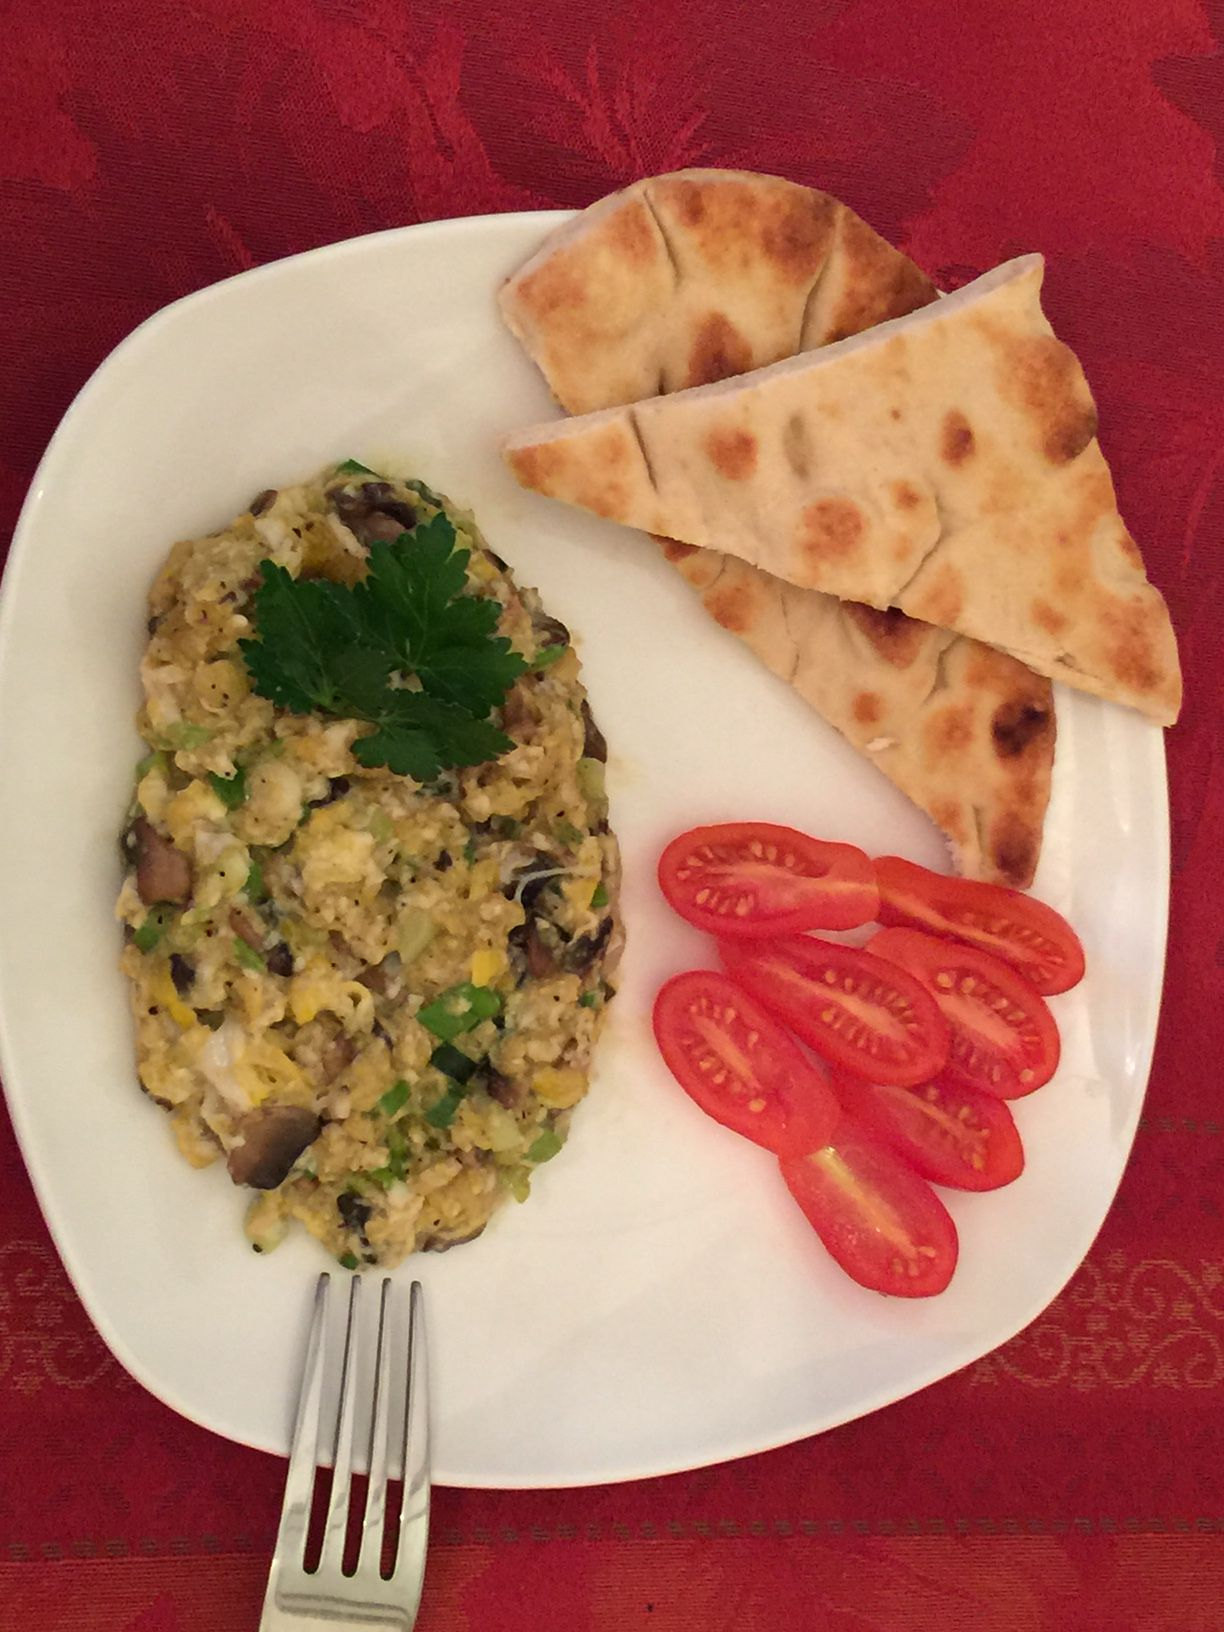 Creamy scrambled eggs with mushrooms and scallions served with toasted naan bread.